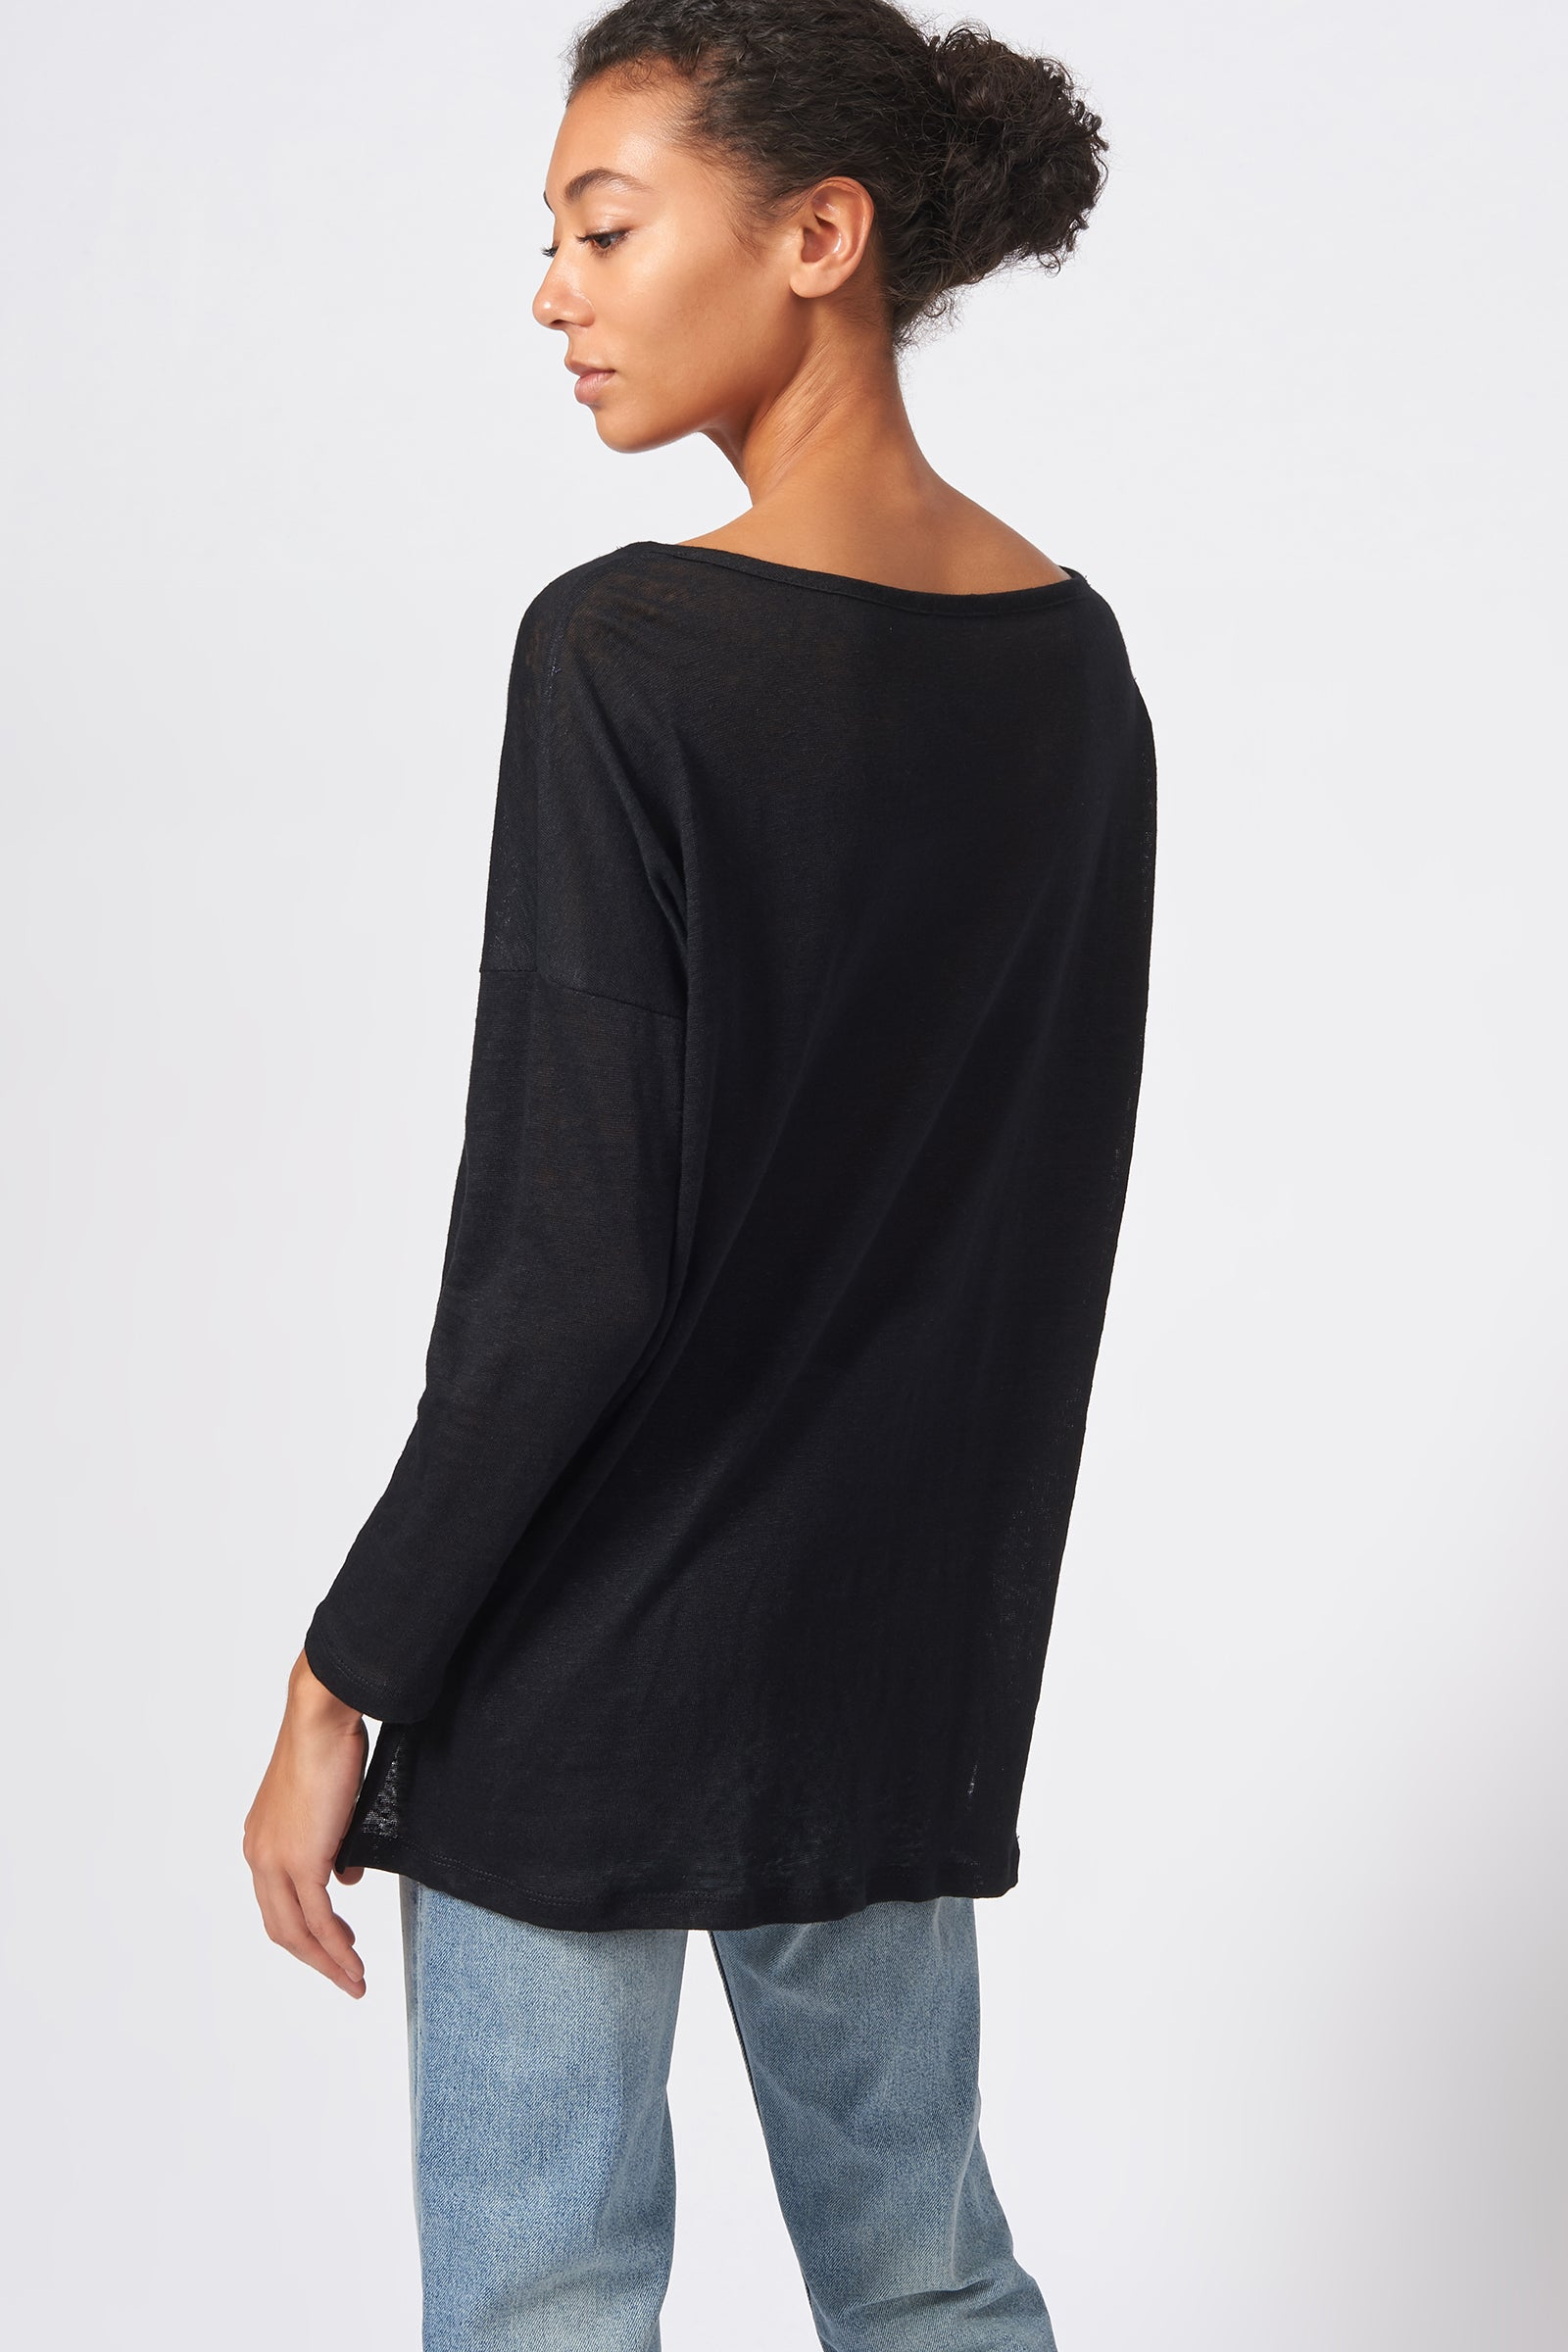 Kal Rieman Boat Neck Box Tee in Black on Model Front Side View